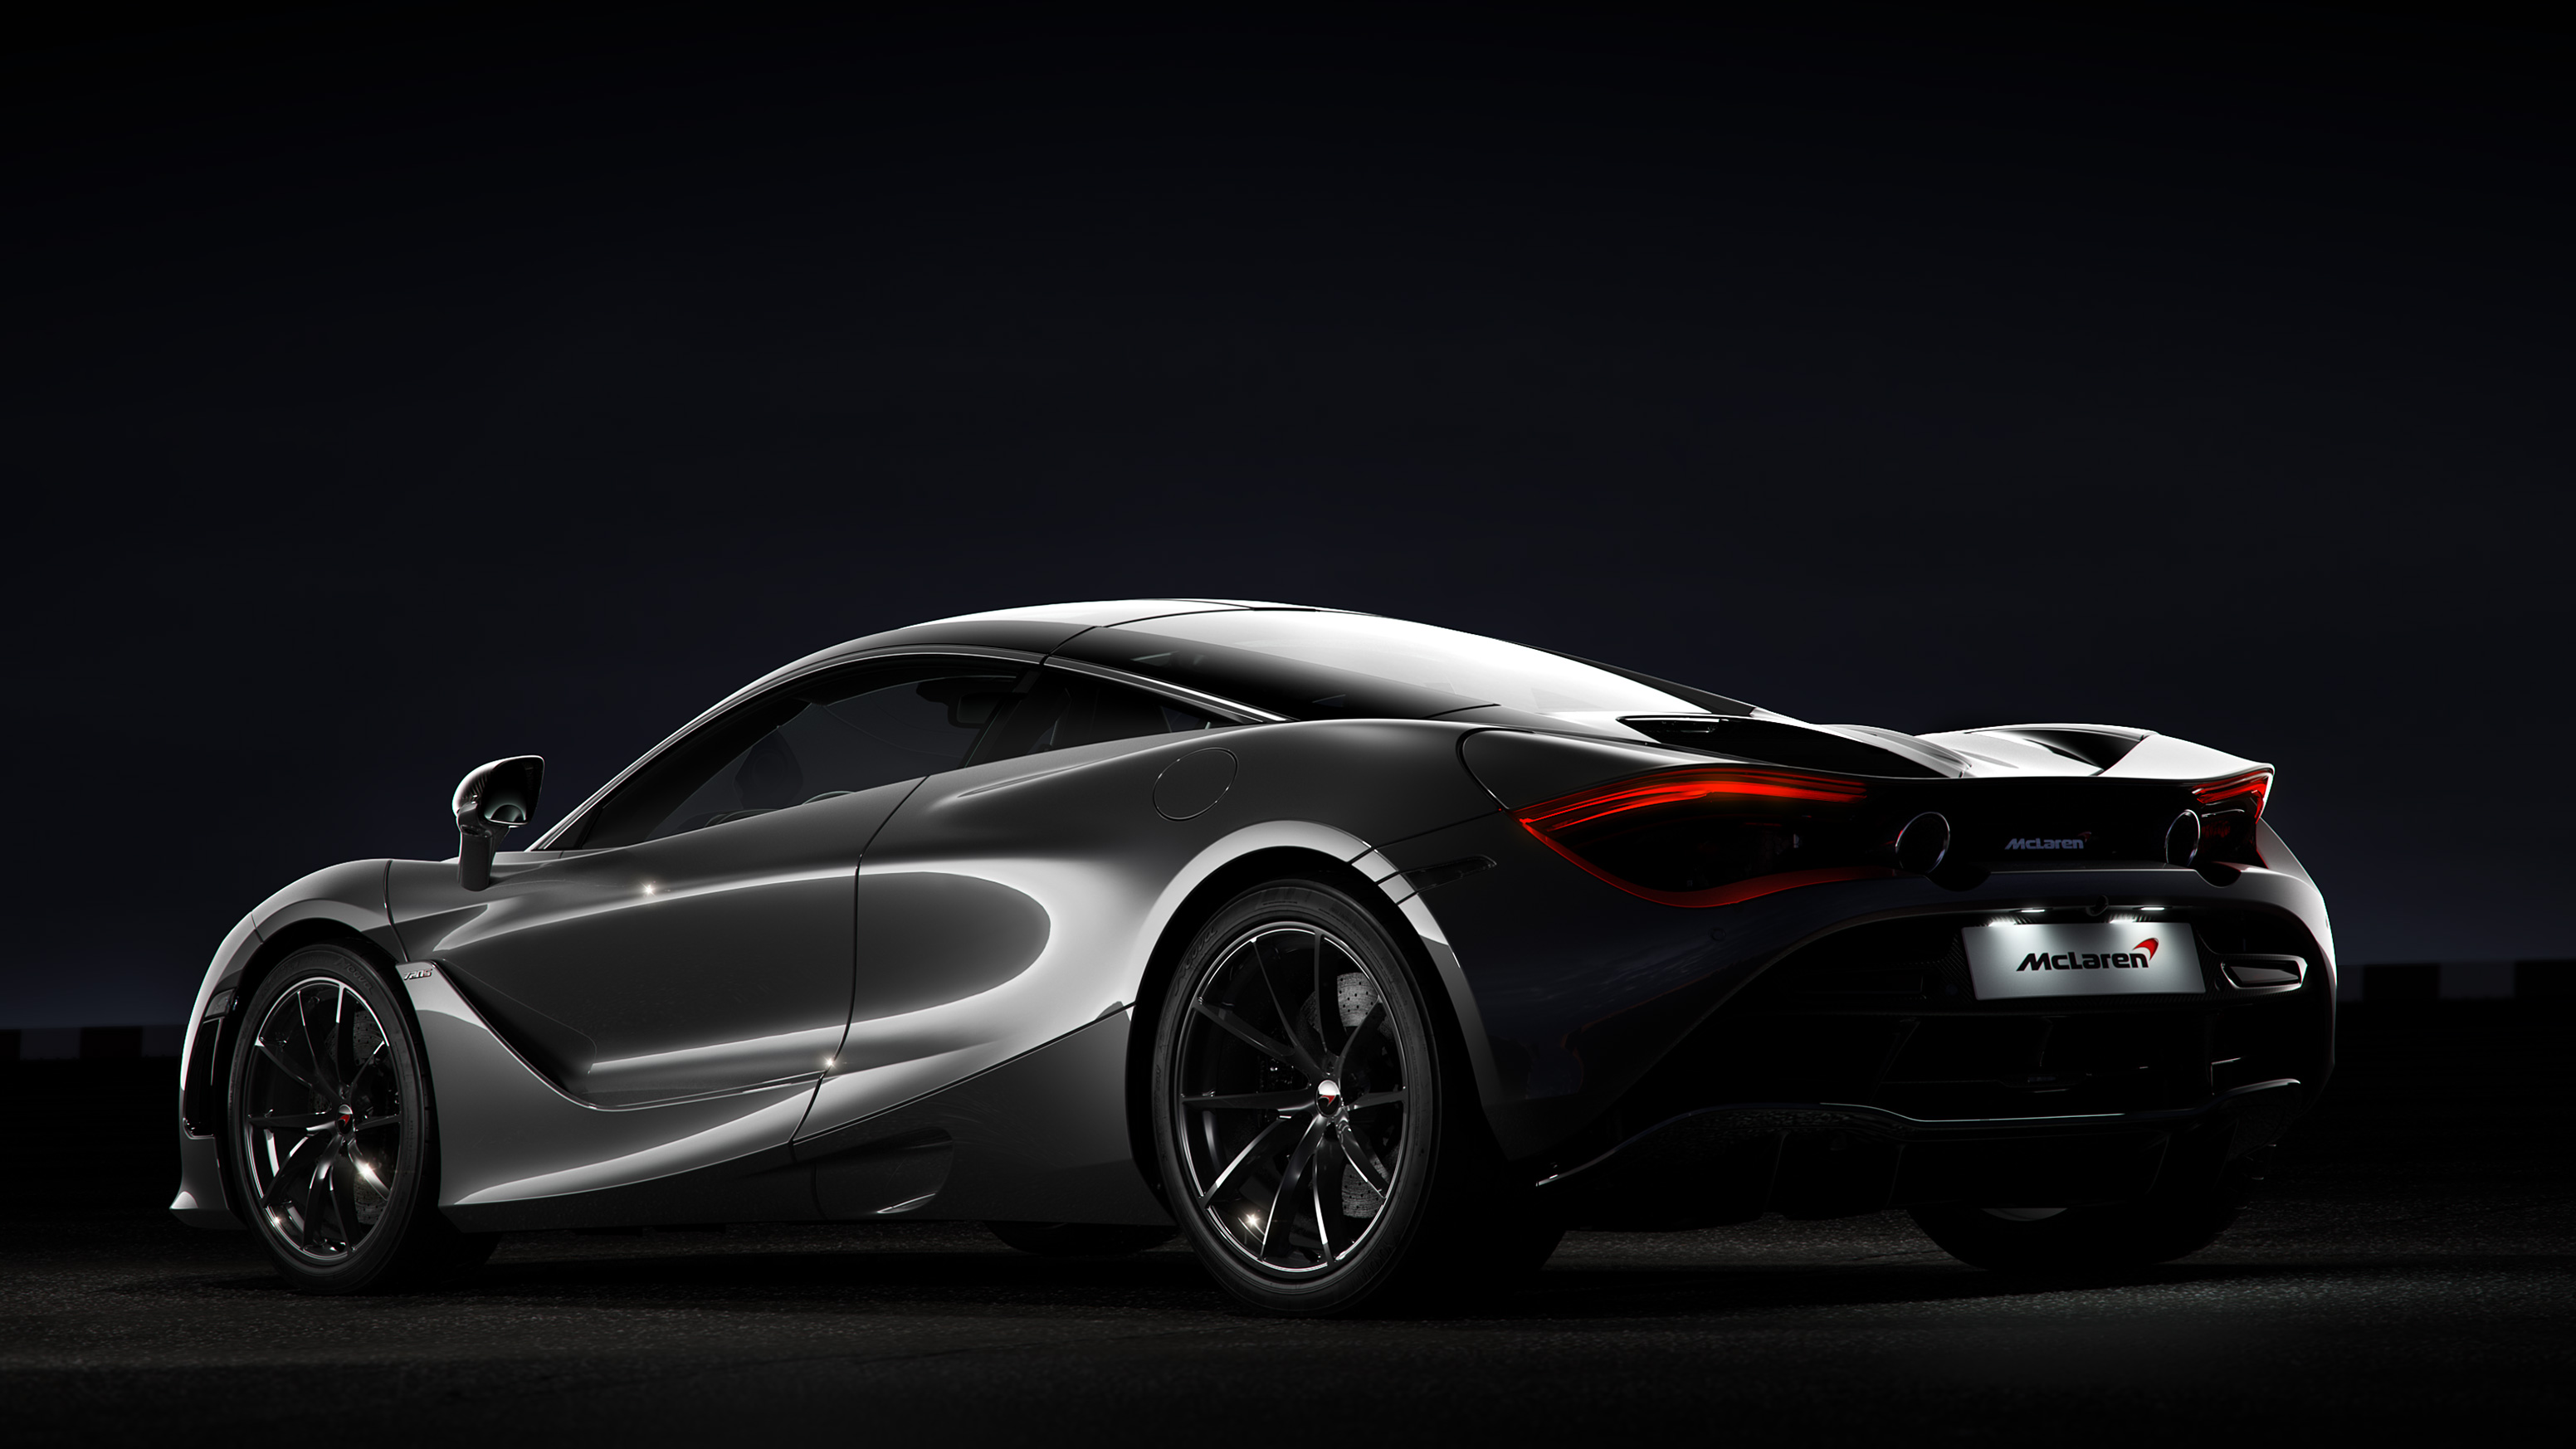 1366x768 Mclaren 720s 1366x768 Resolution Hd 4k Wallpapers Images Backgrounds Photos And Pictures